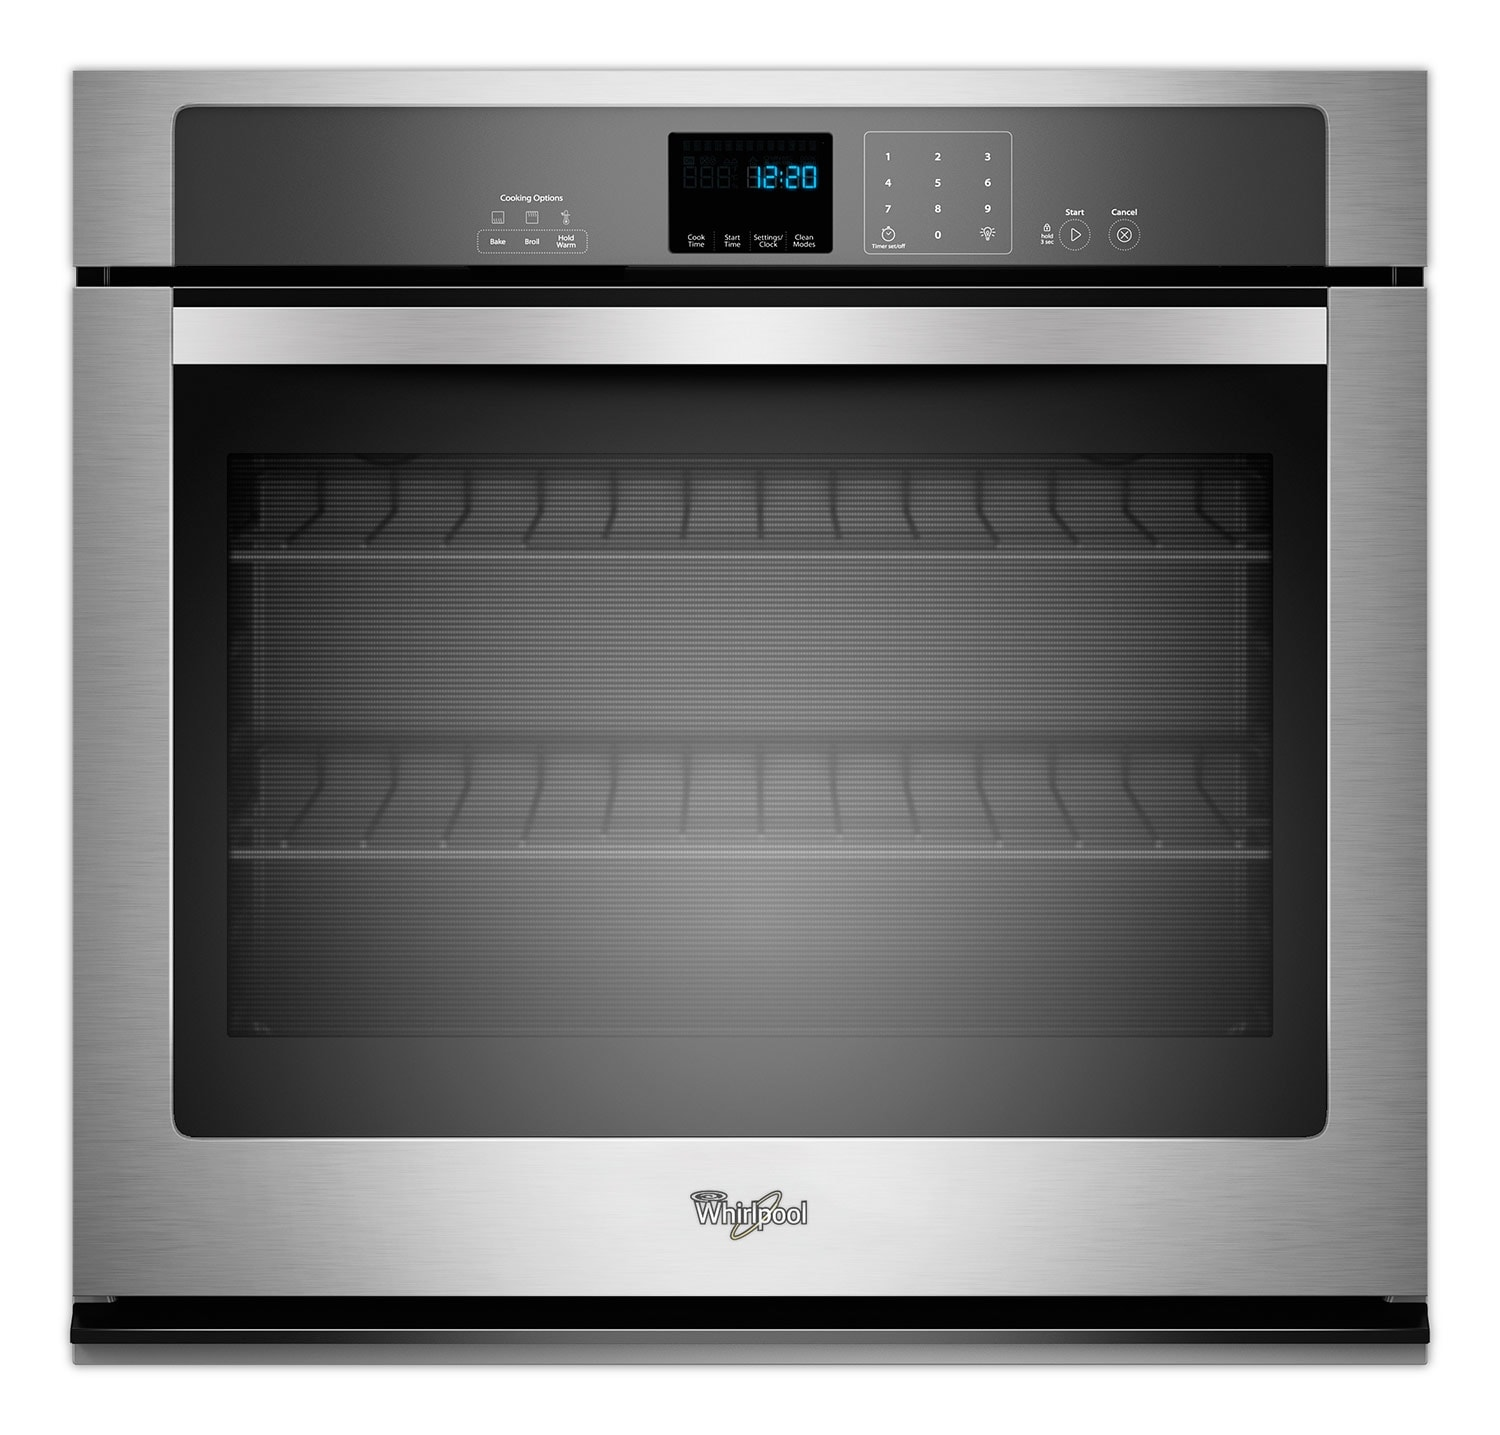 Whirlpool Stainless Steel Wall Oven (5 Cu. Ft.) - WOS51EC0AS